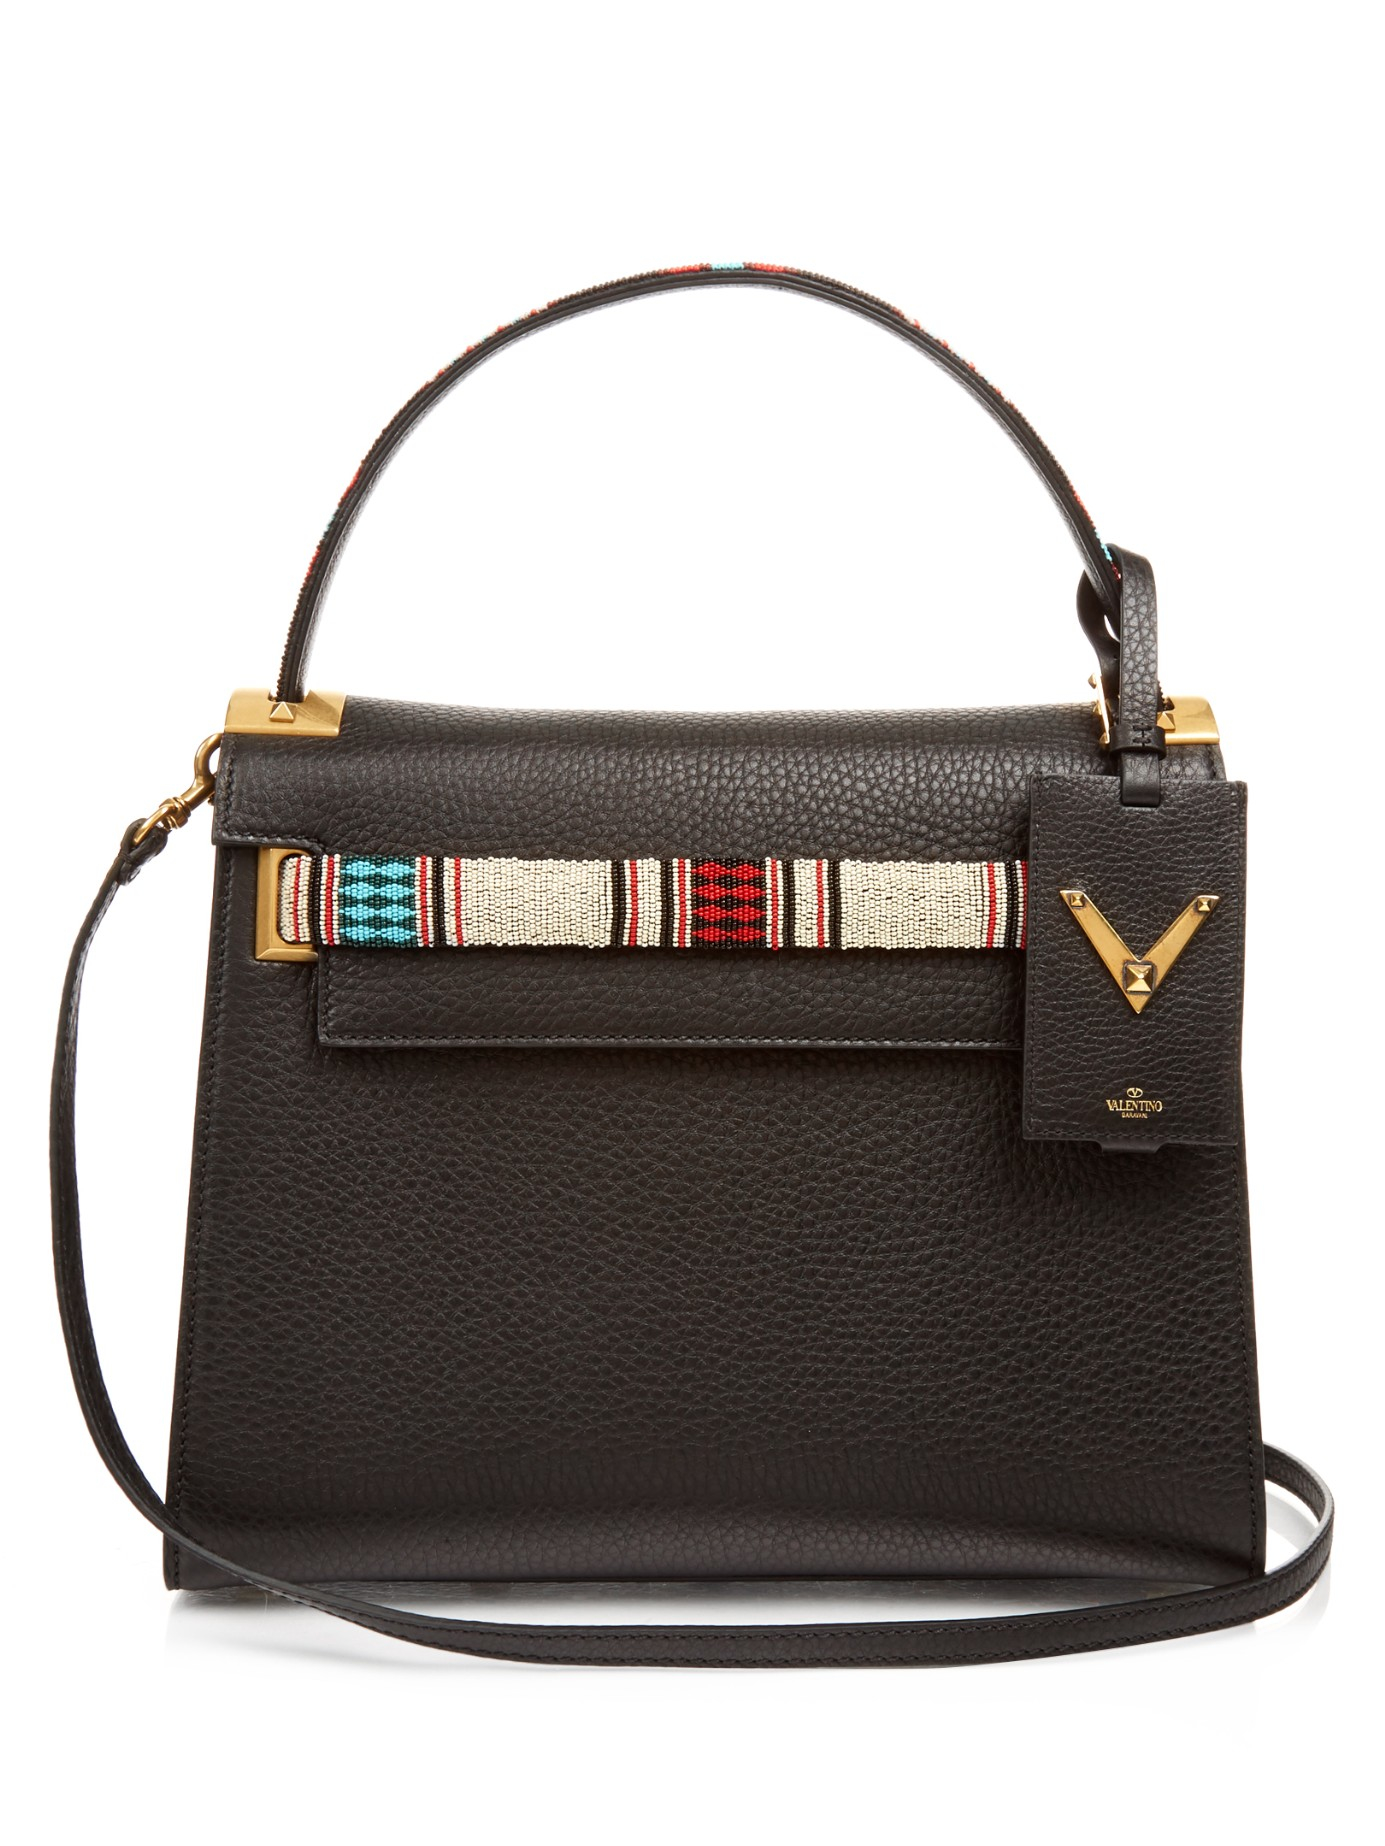 ca55b94f866 Gallery. Previously sold at: MATCHESFASHION.COM · Women's Valentino  Rockstud Bags